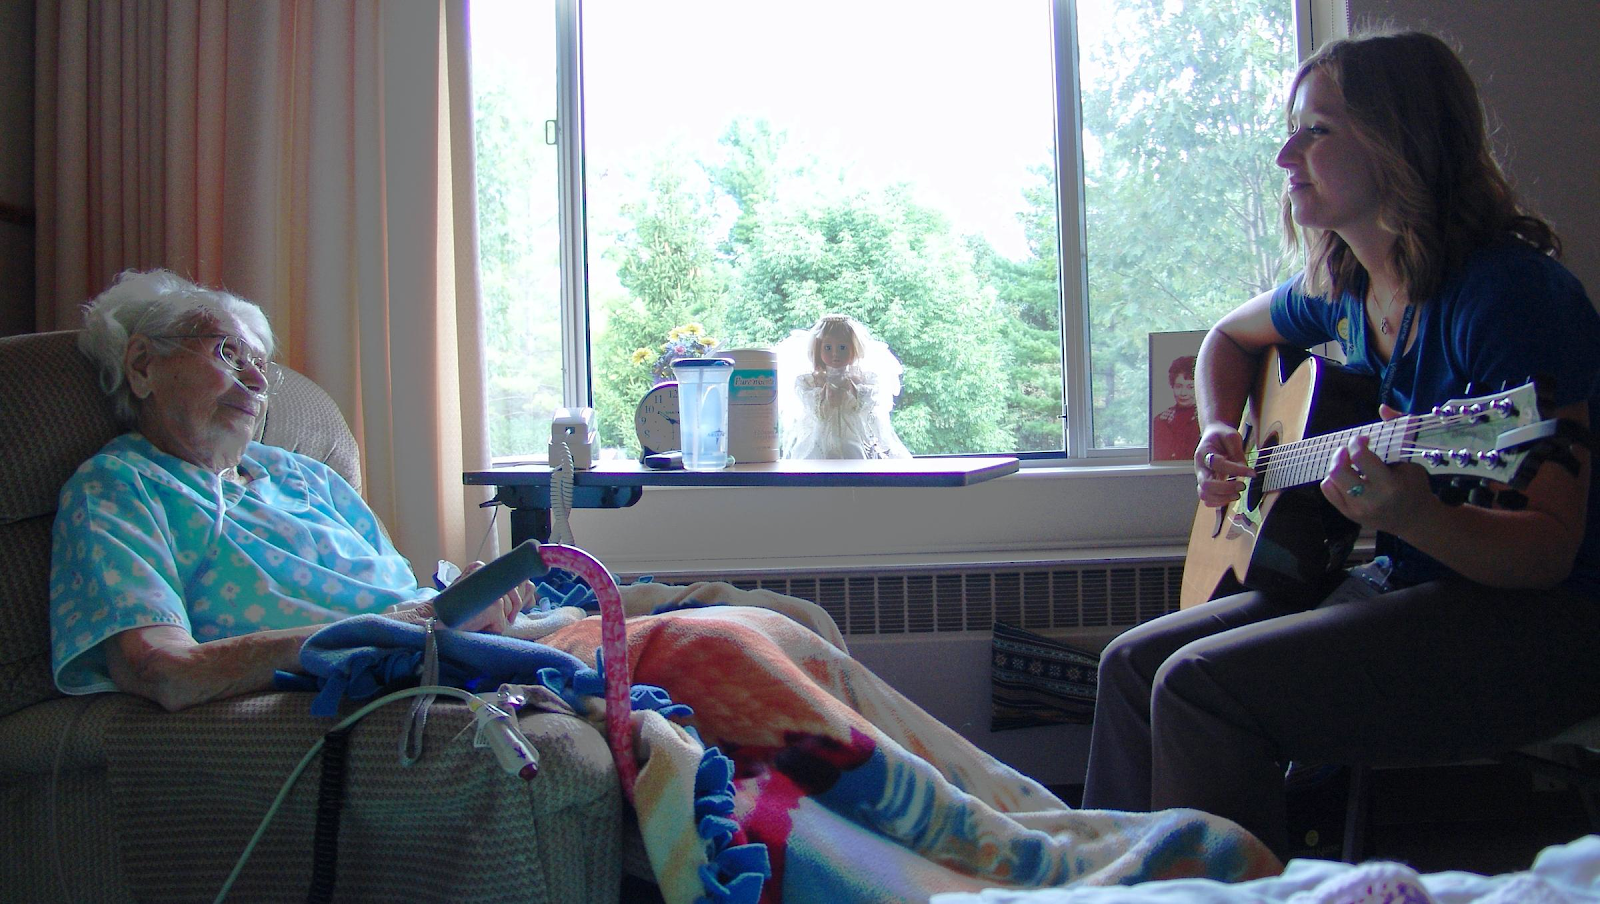 woman sitting in a recliner in a hospital with a music therapist nearby. She is holding a guitar.